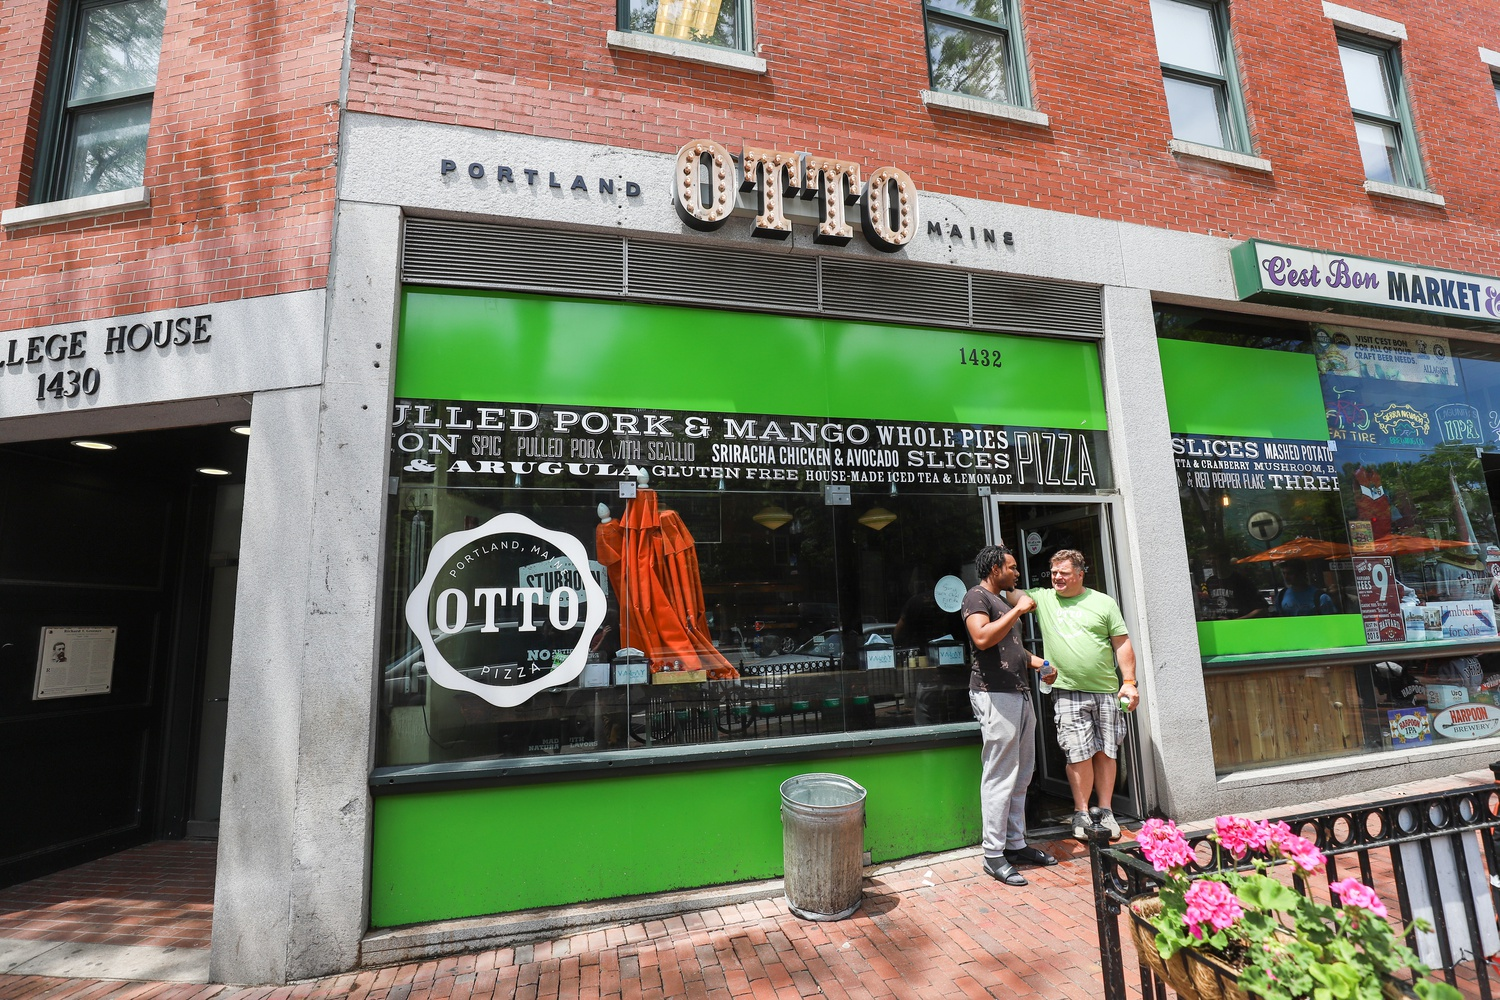 OTTO Pizza in Harvard Square Temporarily Closes After Fire